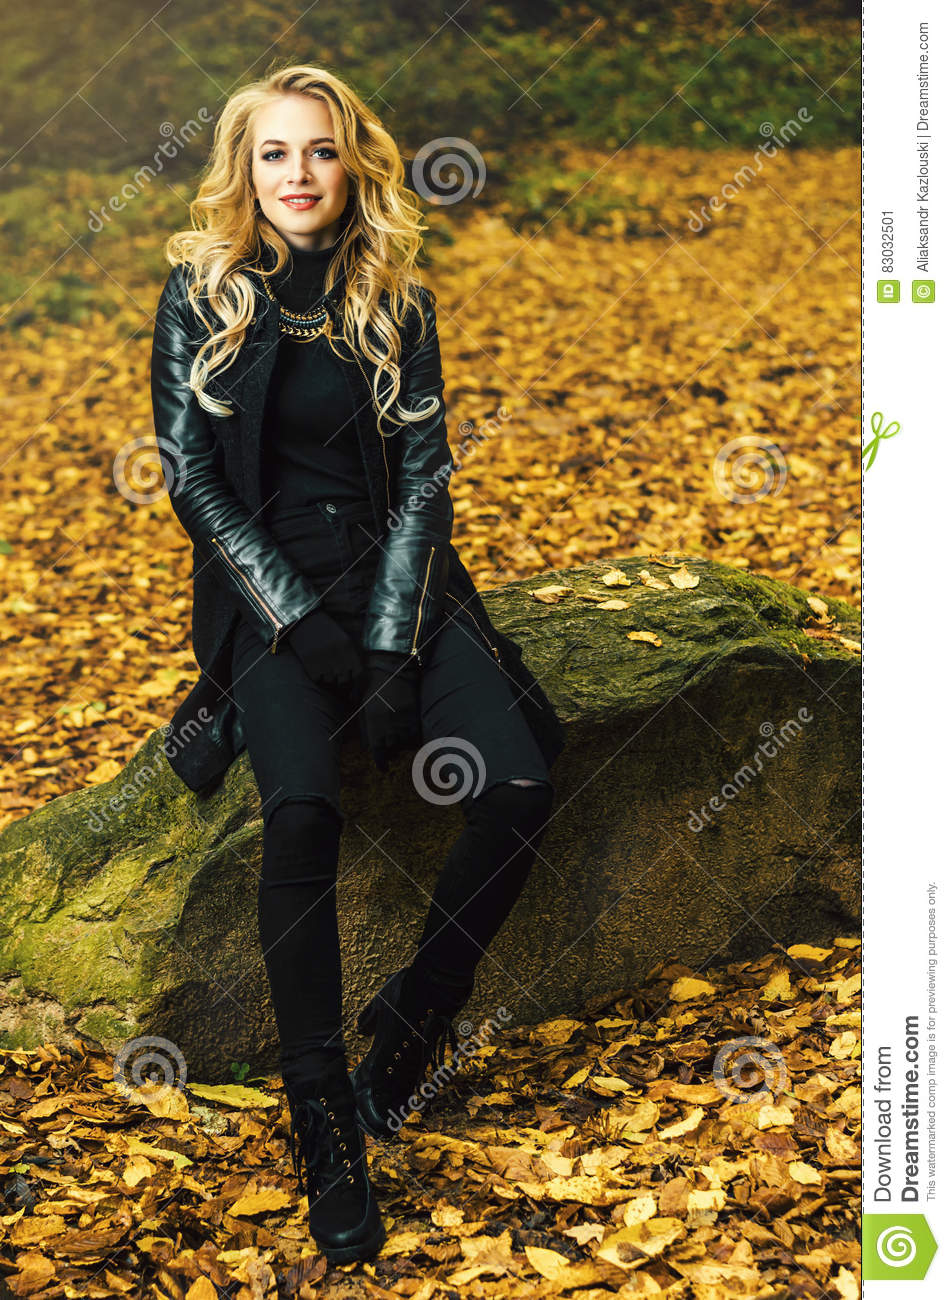 girl sitting outdoor in autumn scenery